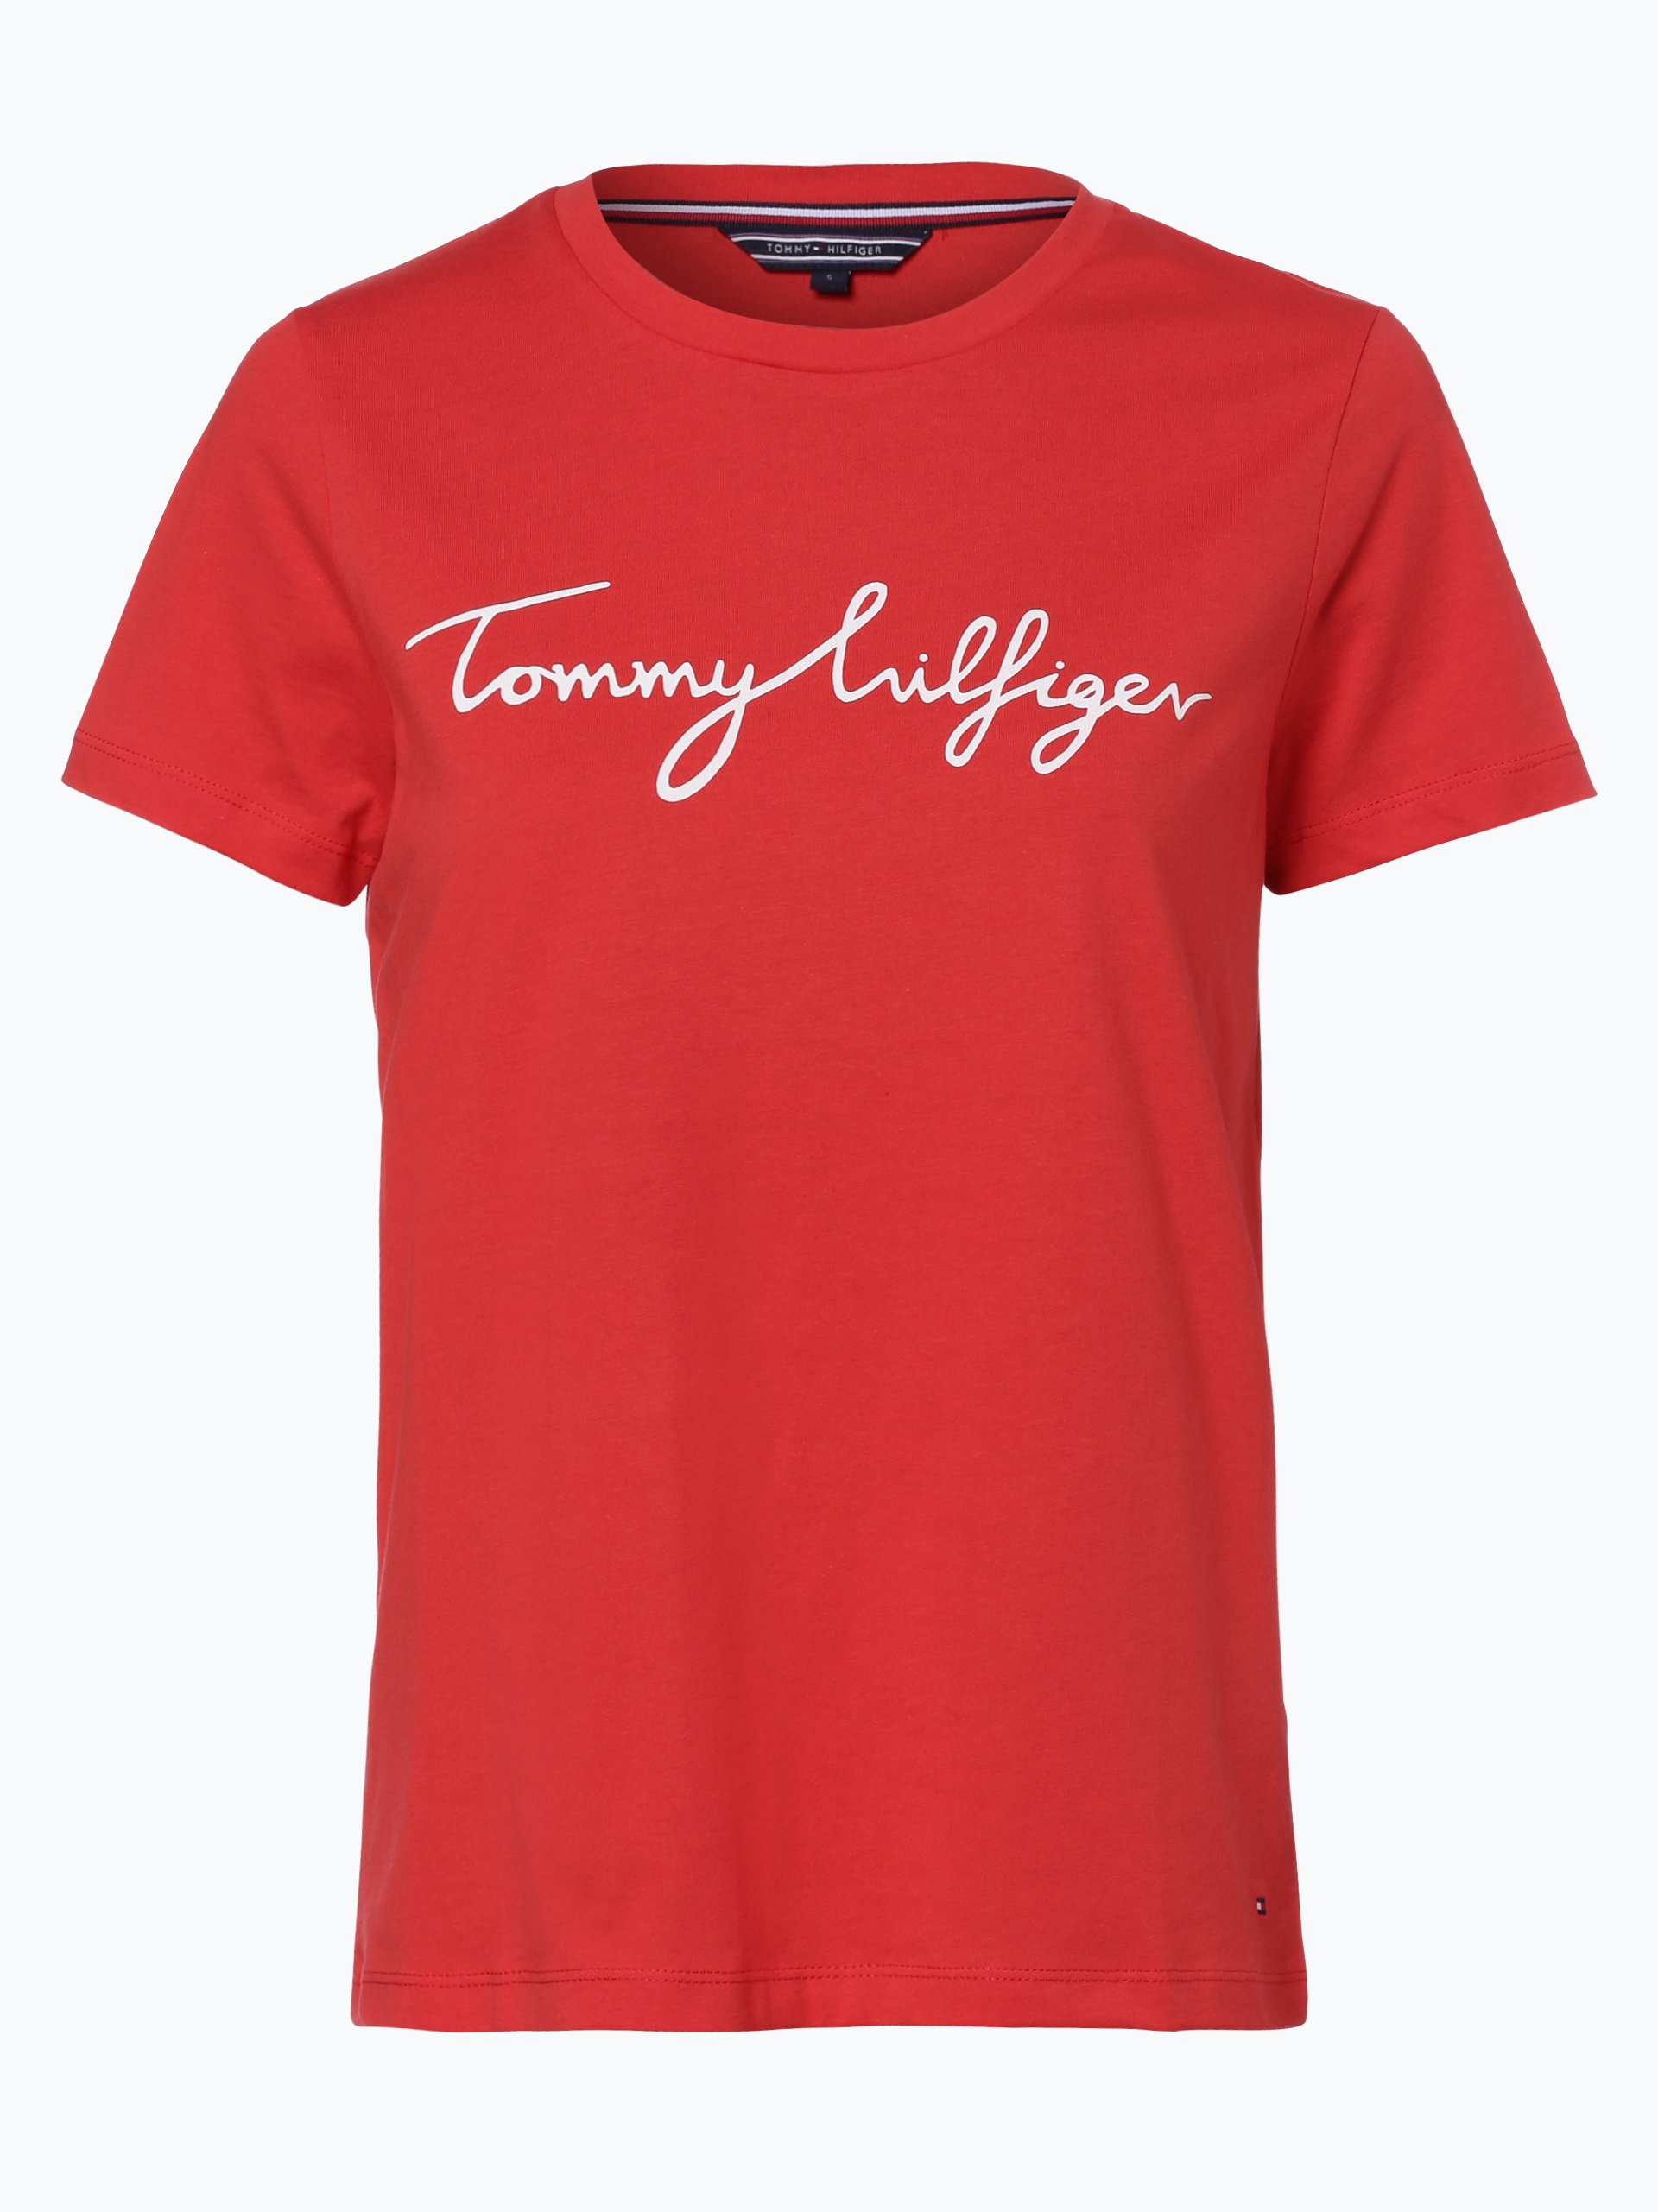 tommy hilfiger damen t shirt rot uni online kaufen peek. Black Bedroom Furniture Sets. Home Design Ideas